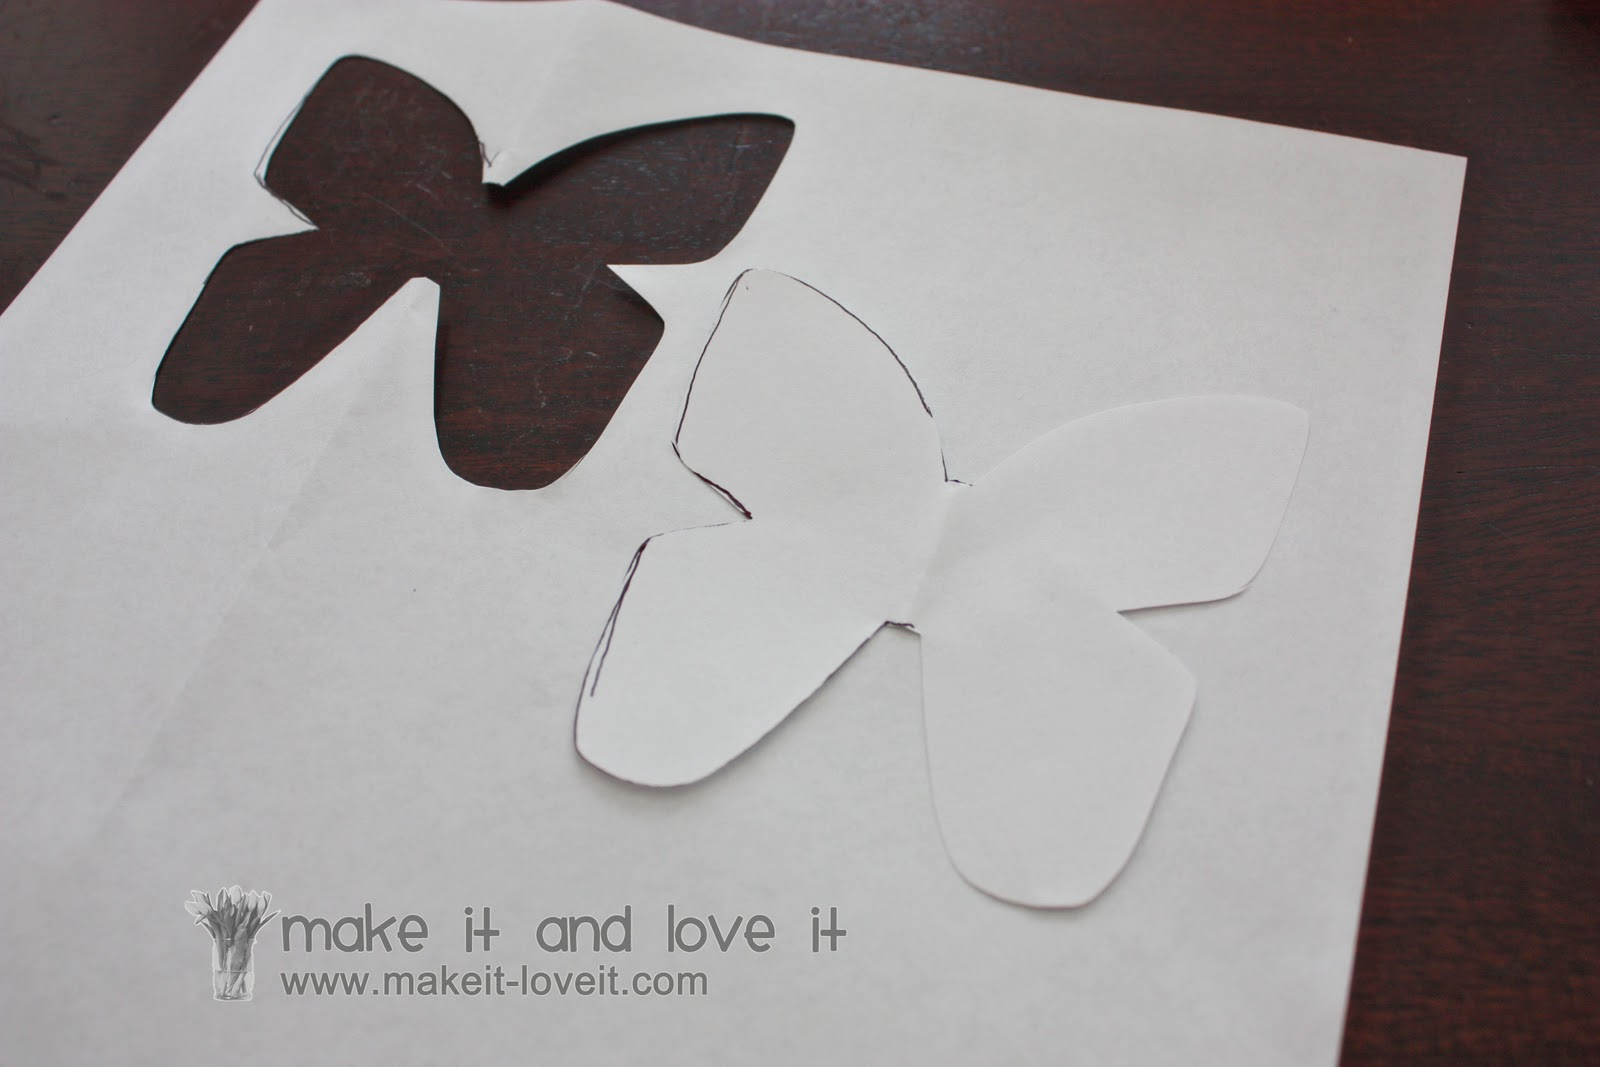 Fabulous Decorate My Home Part D Butterfly Wall Display